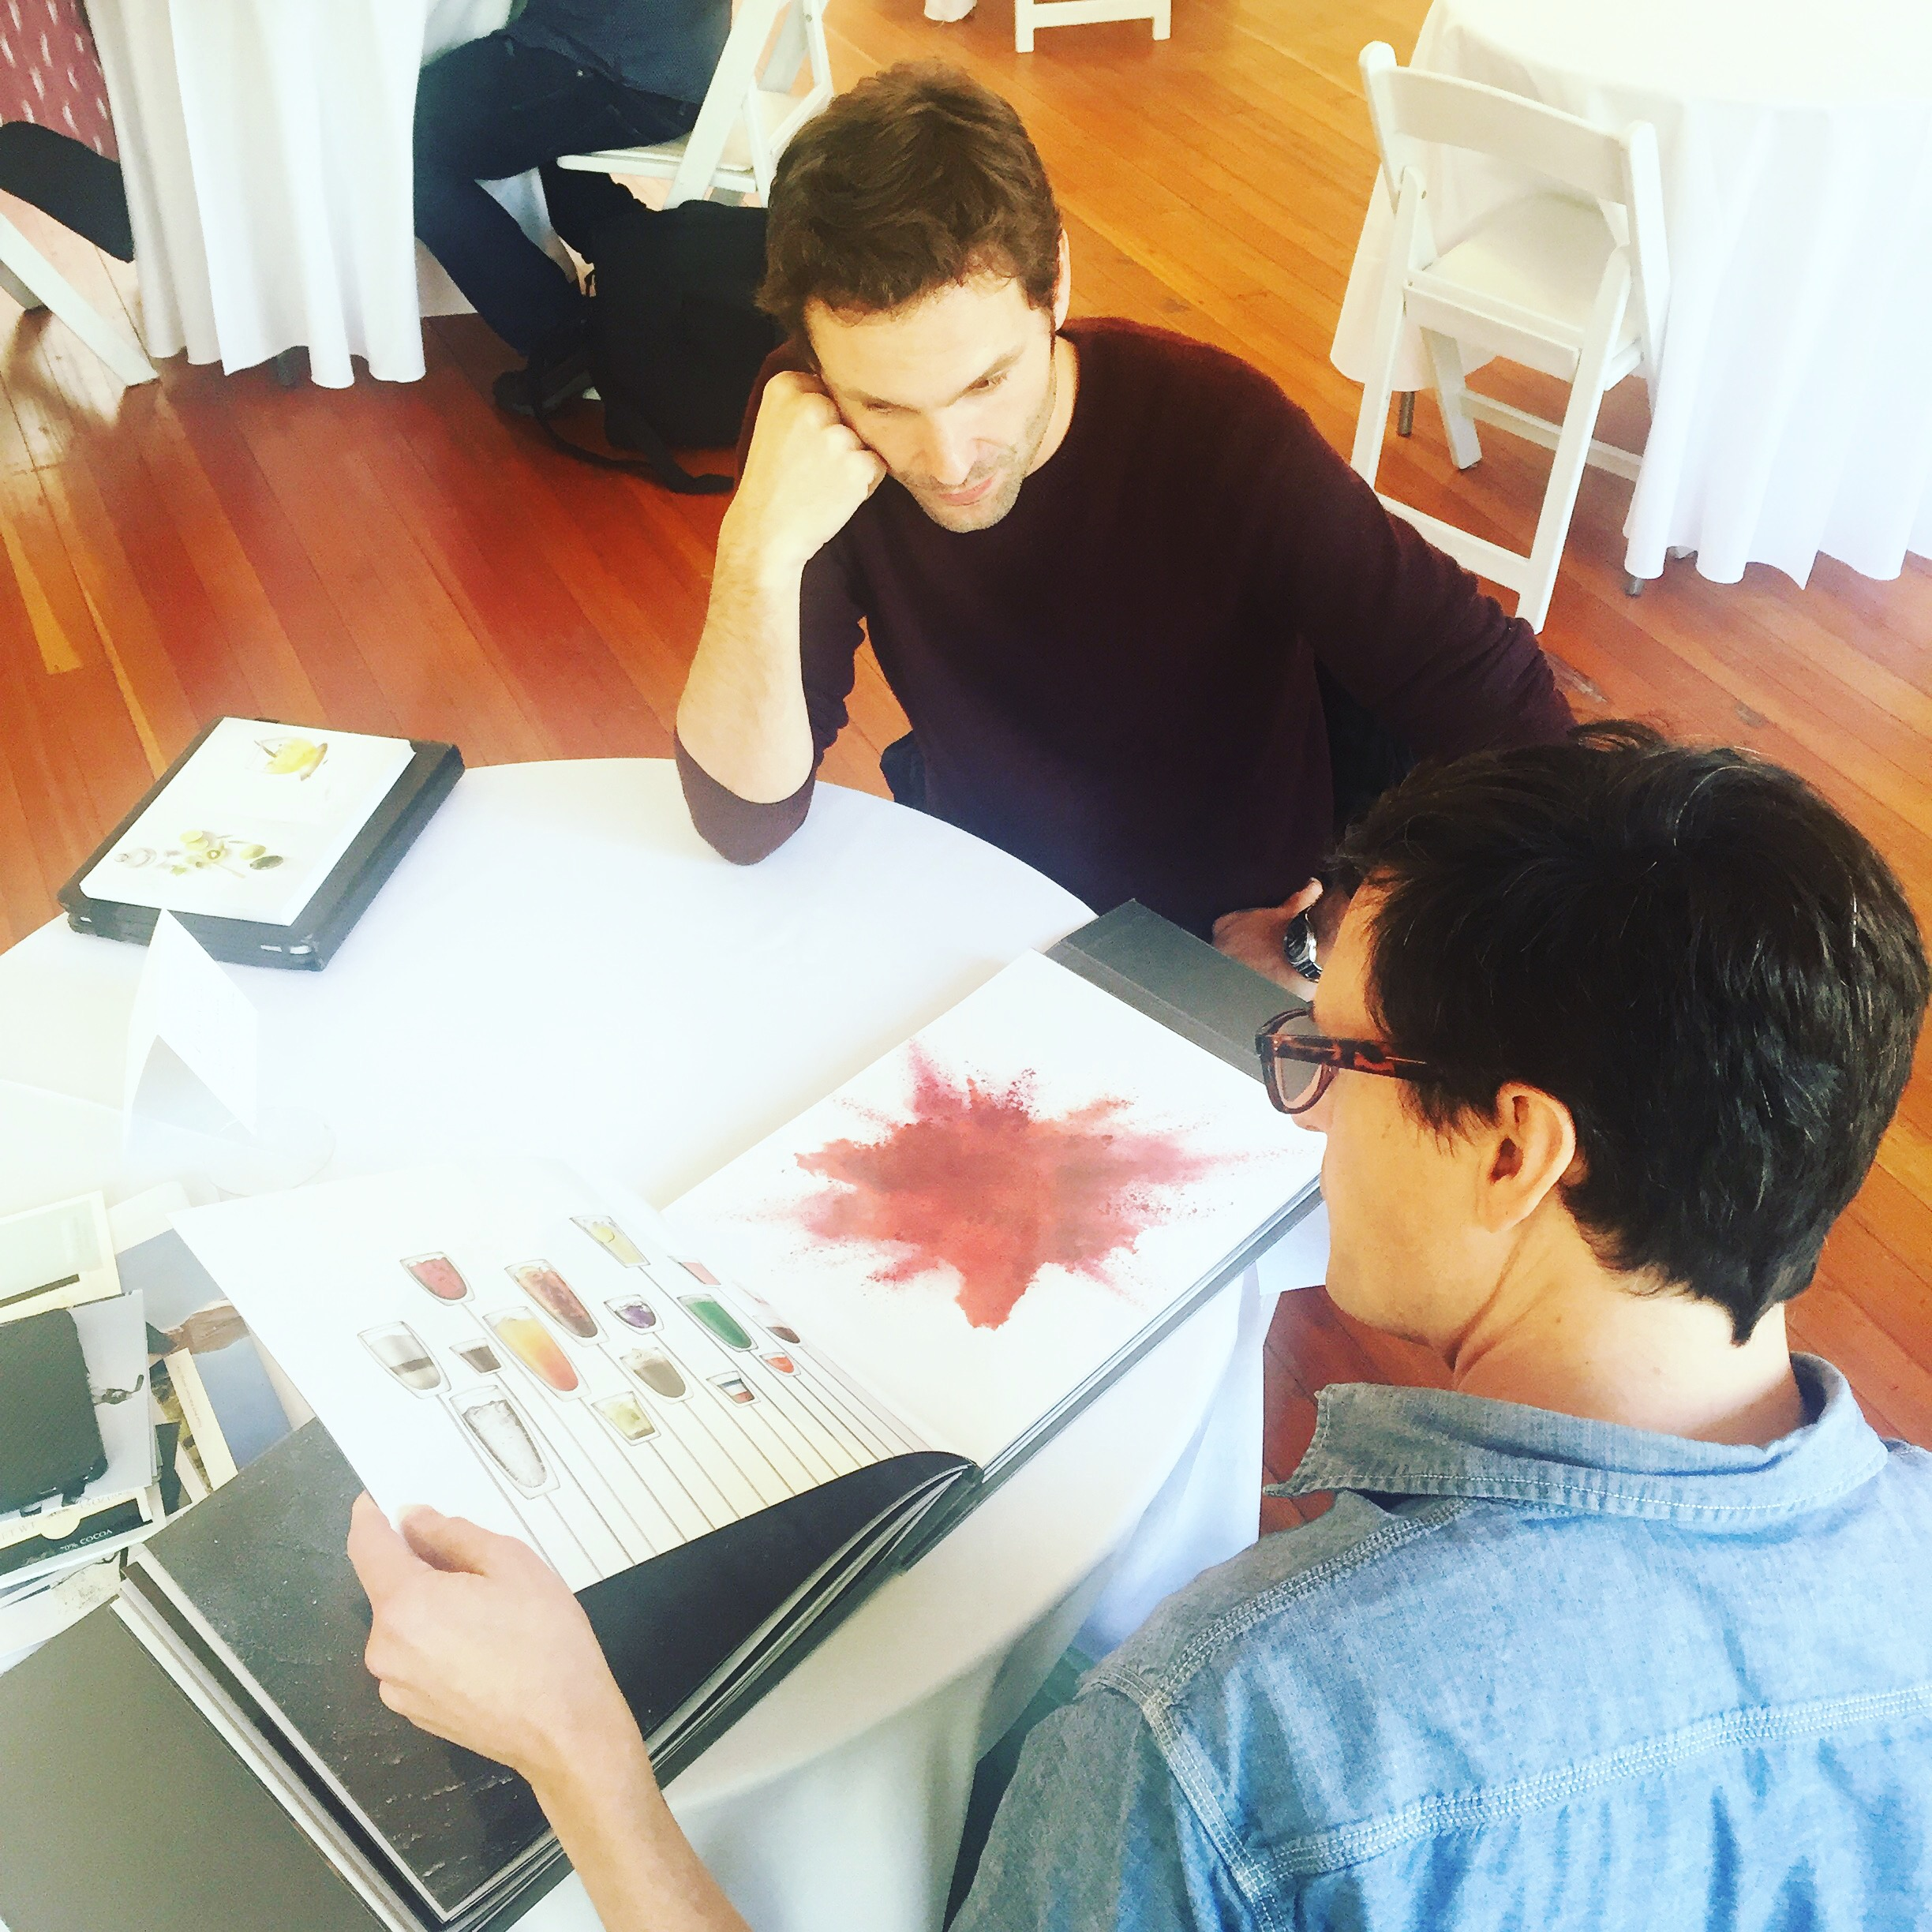 BLVDSelect member Adrian Mueller shows his work to Daniel Southwick, Director of Art & Print Production for Eleven Inc.